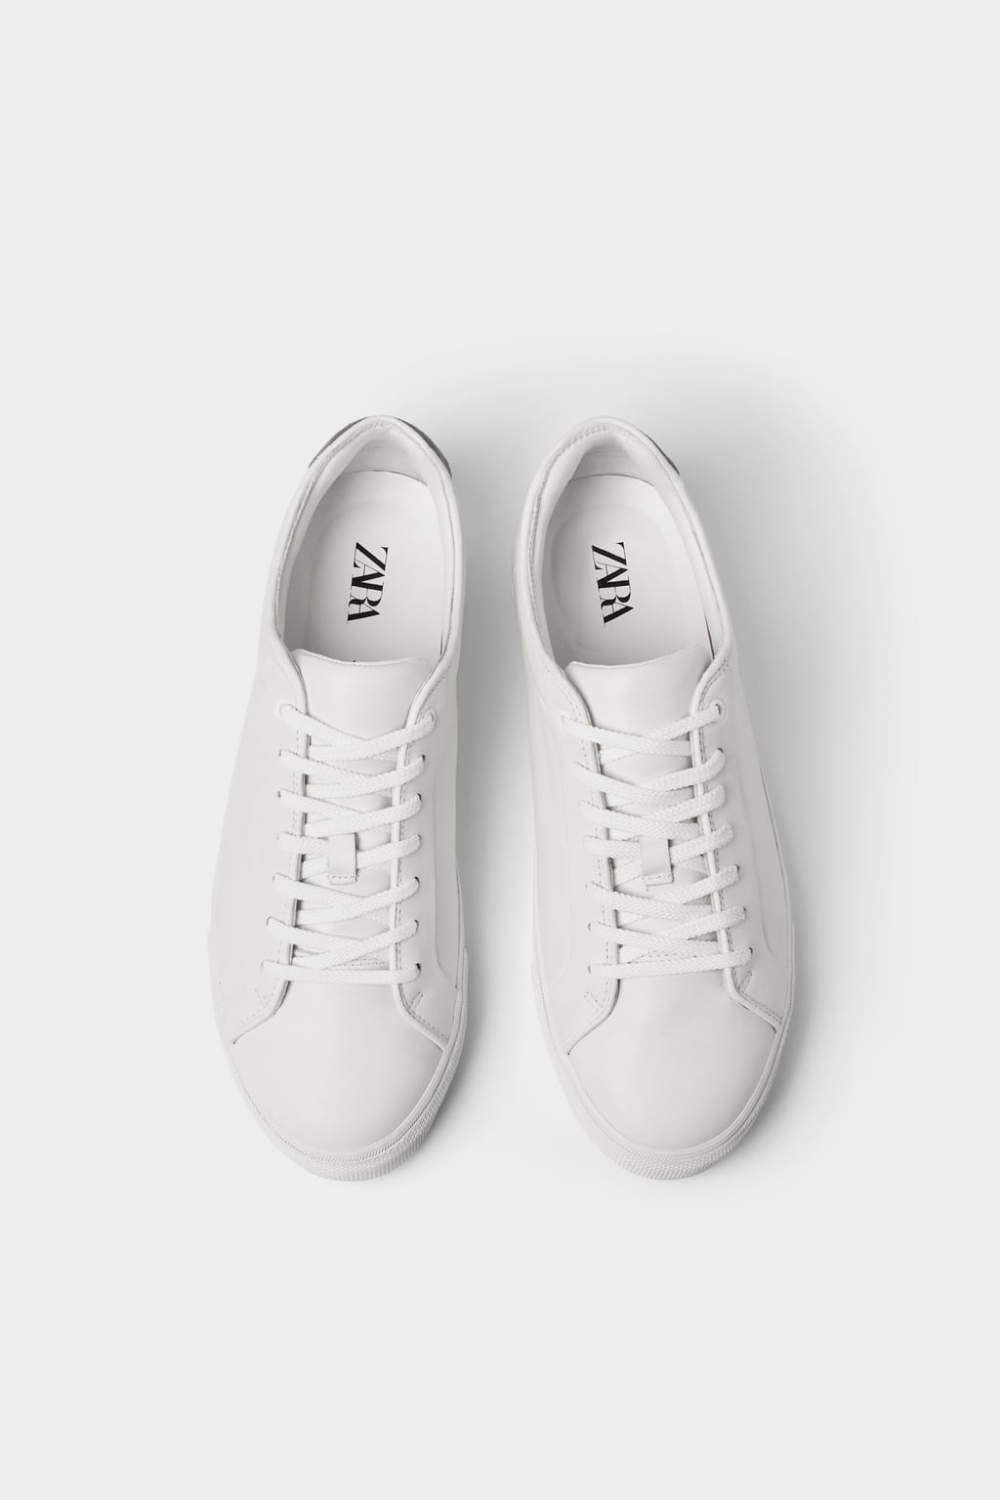 WHITE LEATHER SNEAKERS - Shoes-MAN